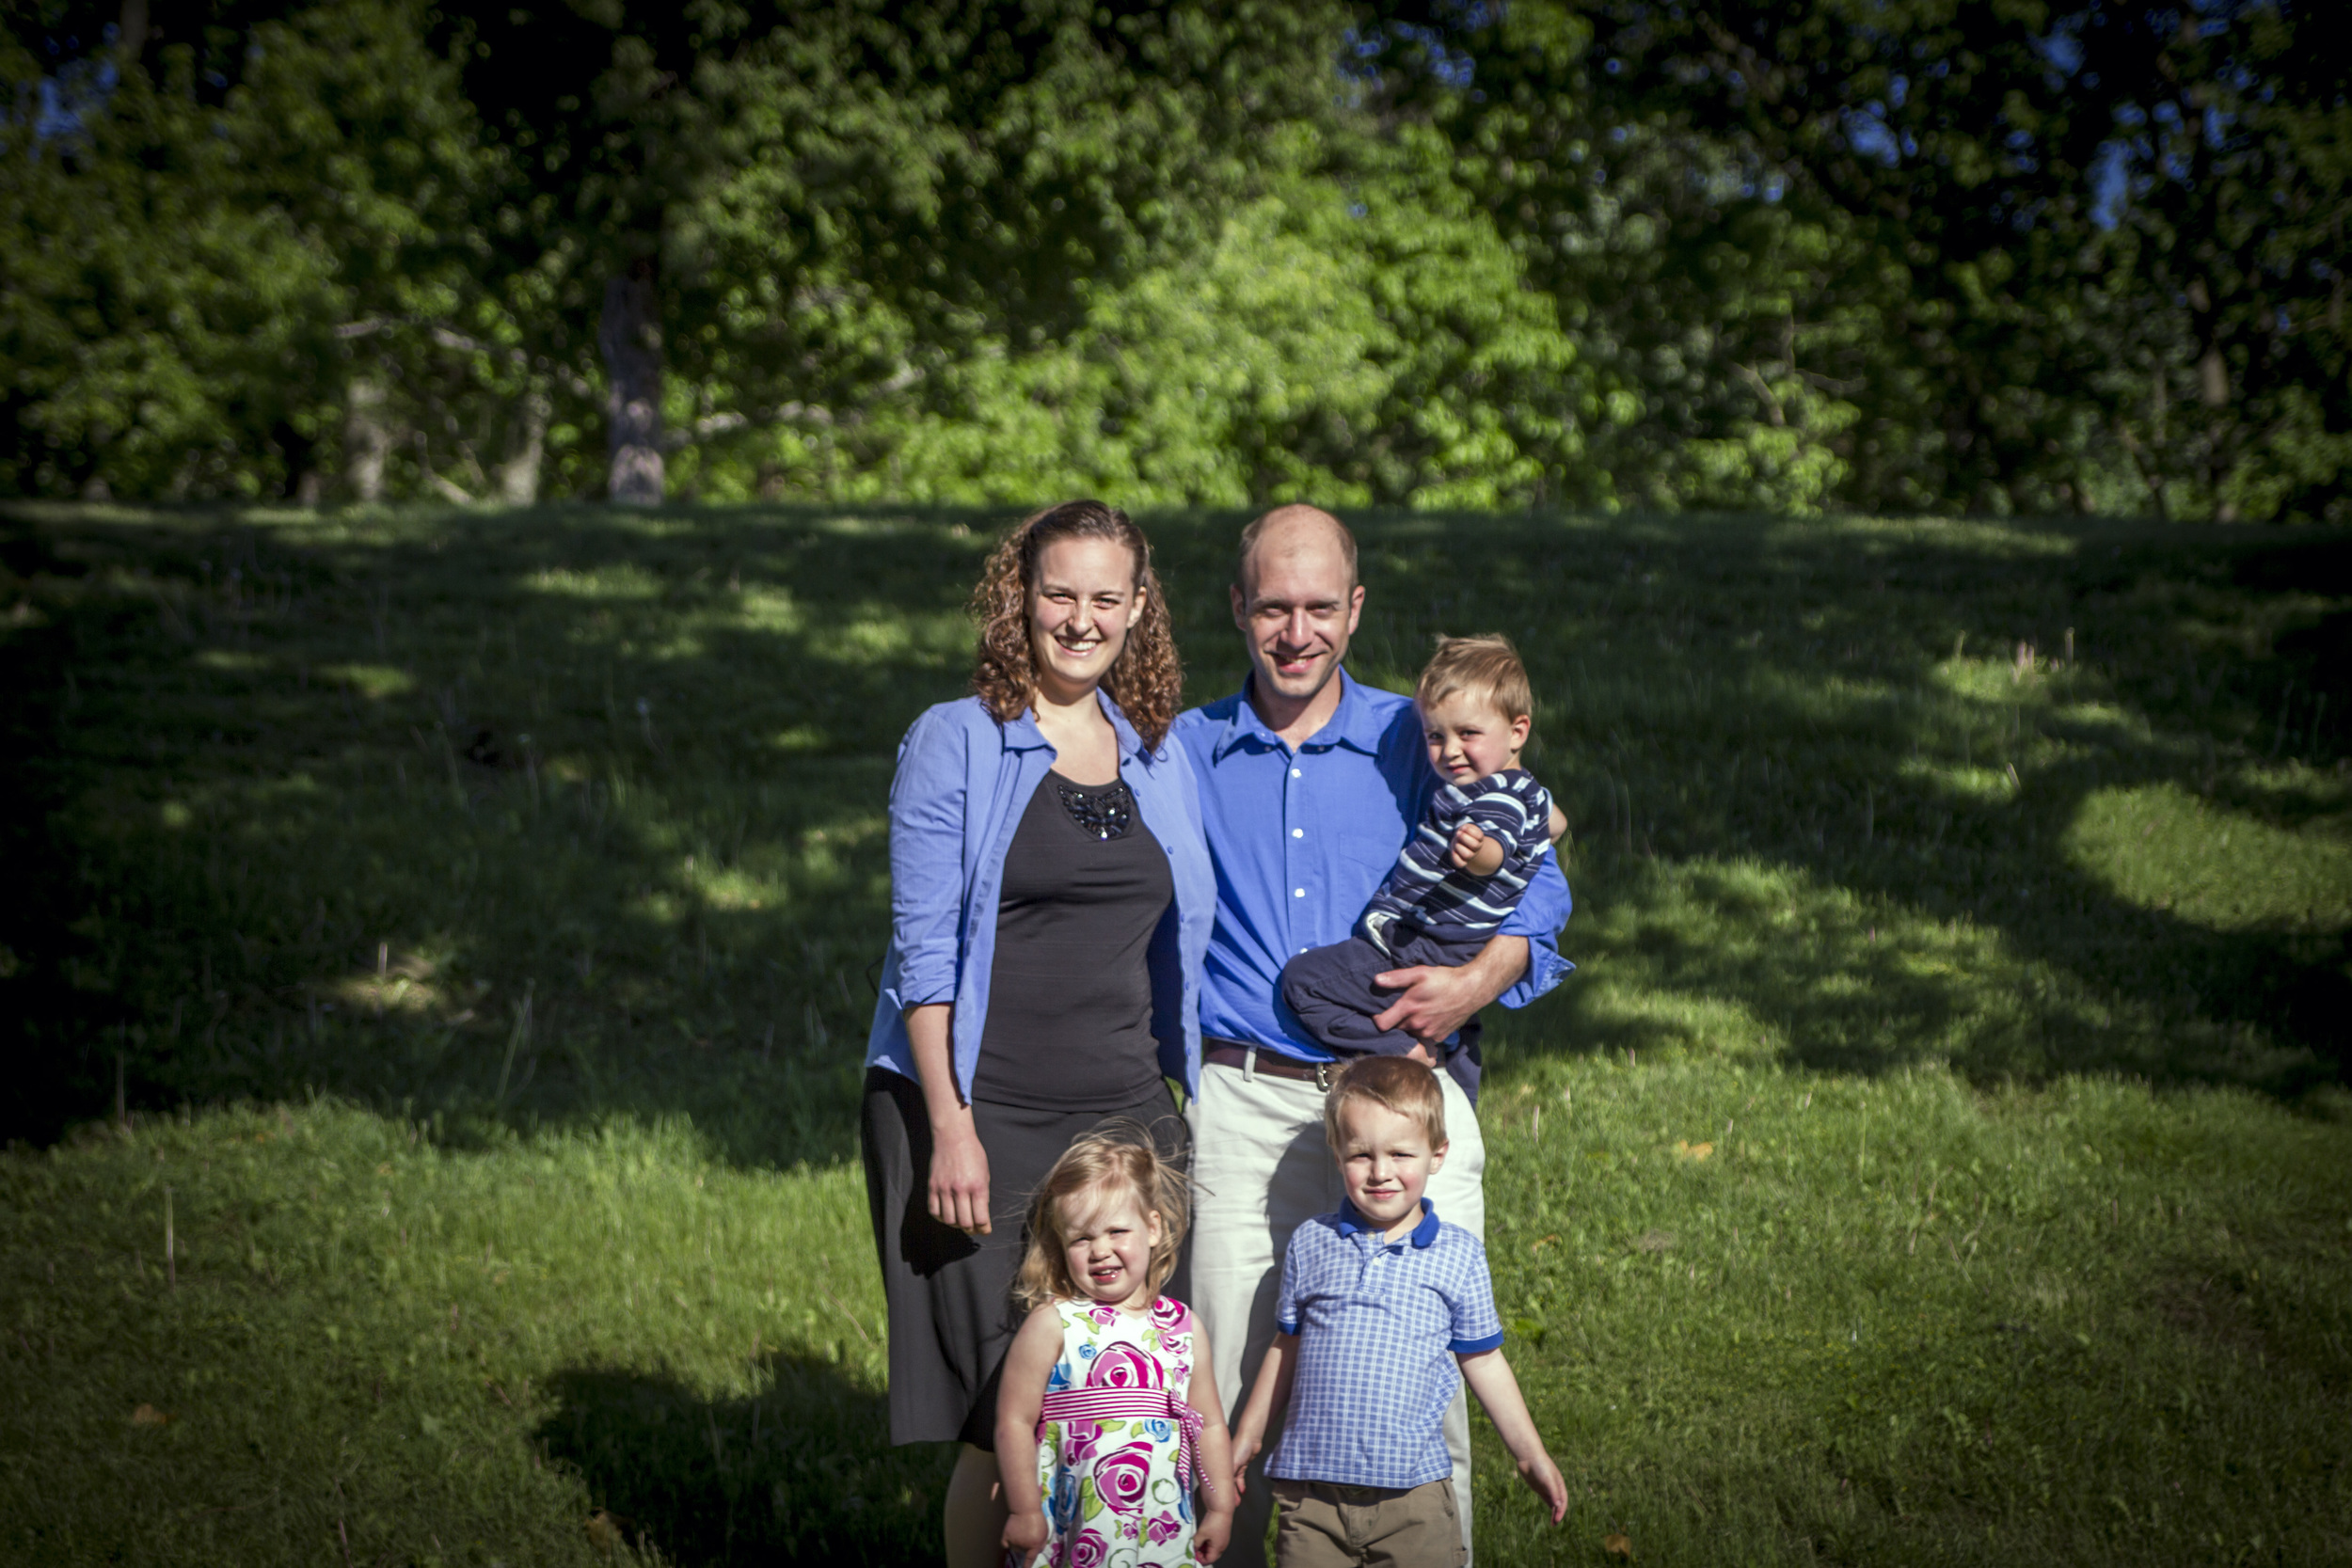 Photo shoot with Deanna Rae Photography and the Austen family, Grand Rapids, Michigan.